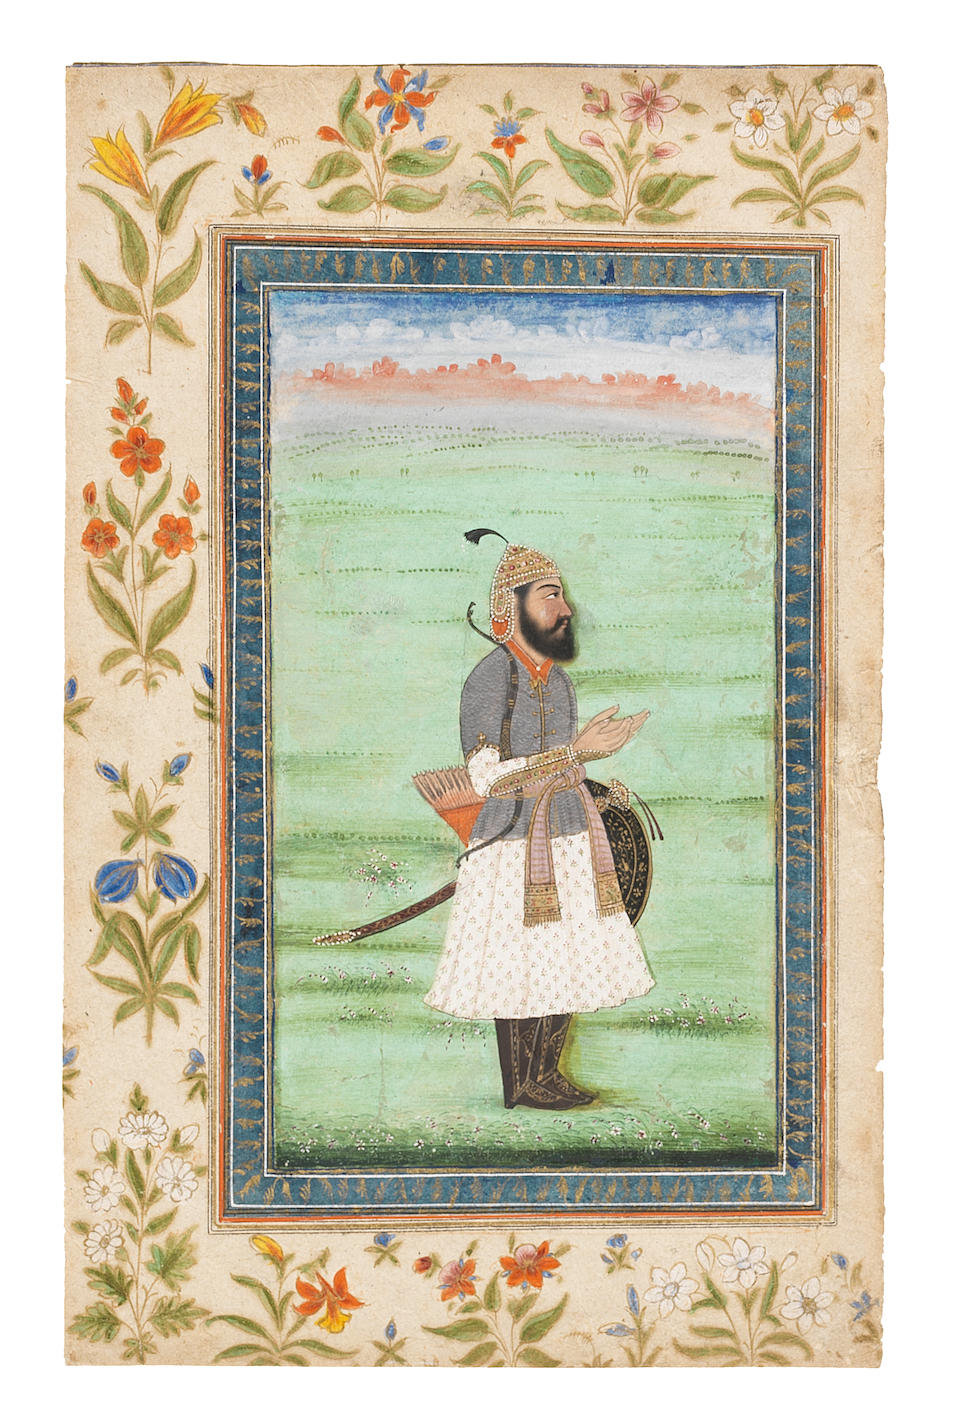 Maharajah Kharak Singh, armed with sword, shield, bow and quiver, standing in a landscape North India, circa 1840